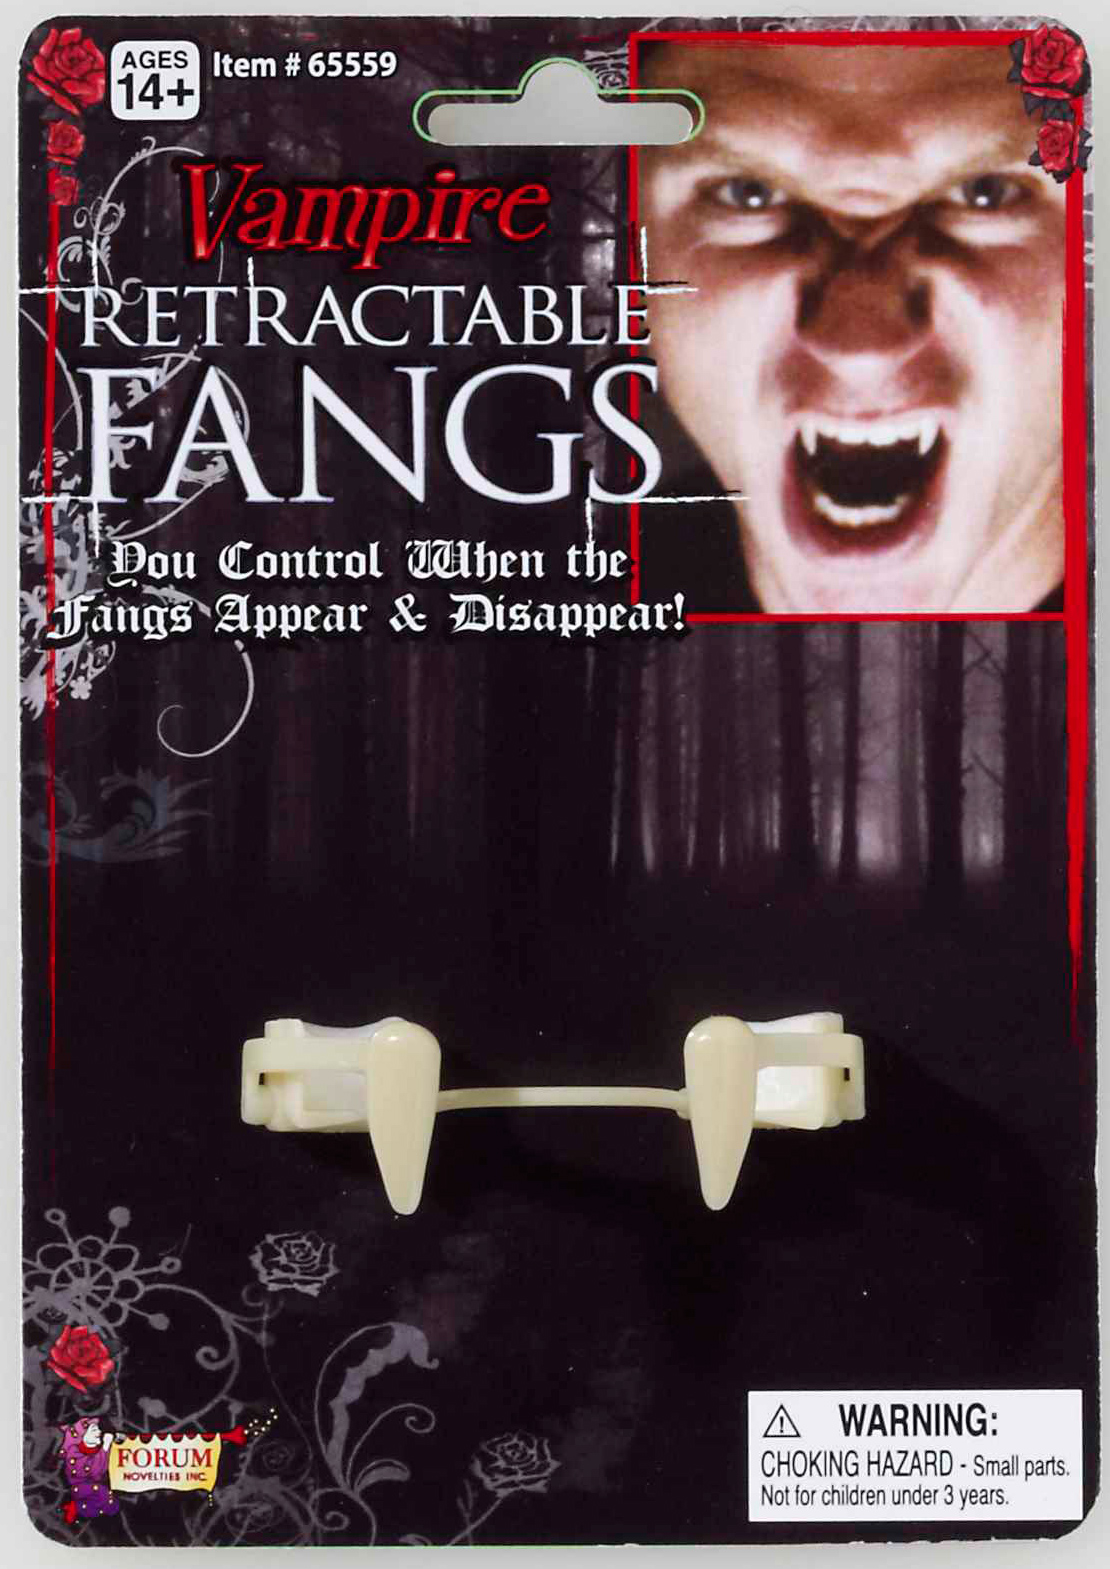 Pin The Fangs on The Vampire Retractable Vampire Fangs